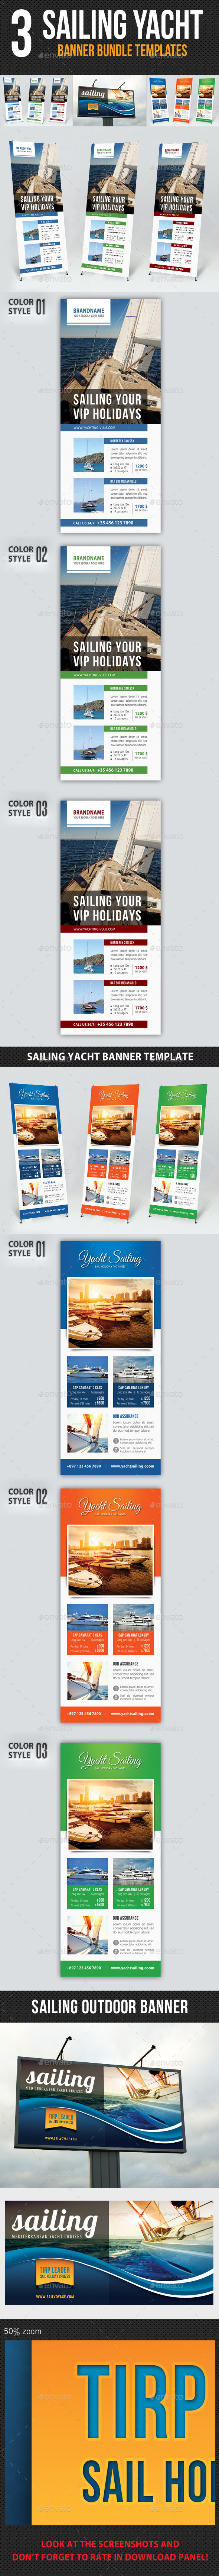 3 in 1 Sailing Yacht Banner Bundle 02